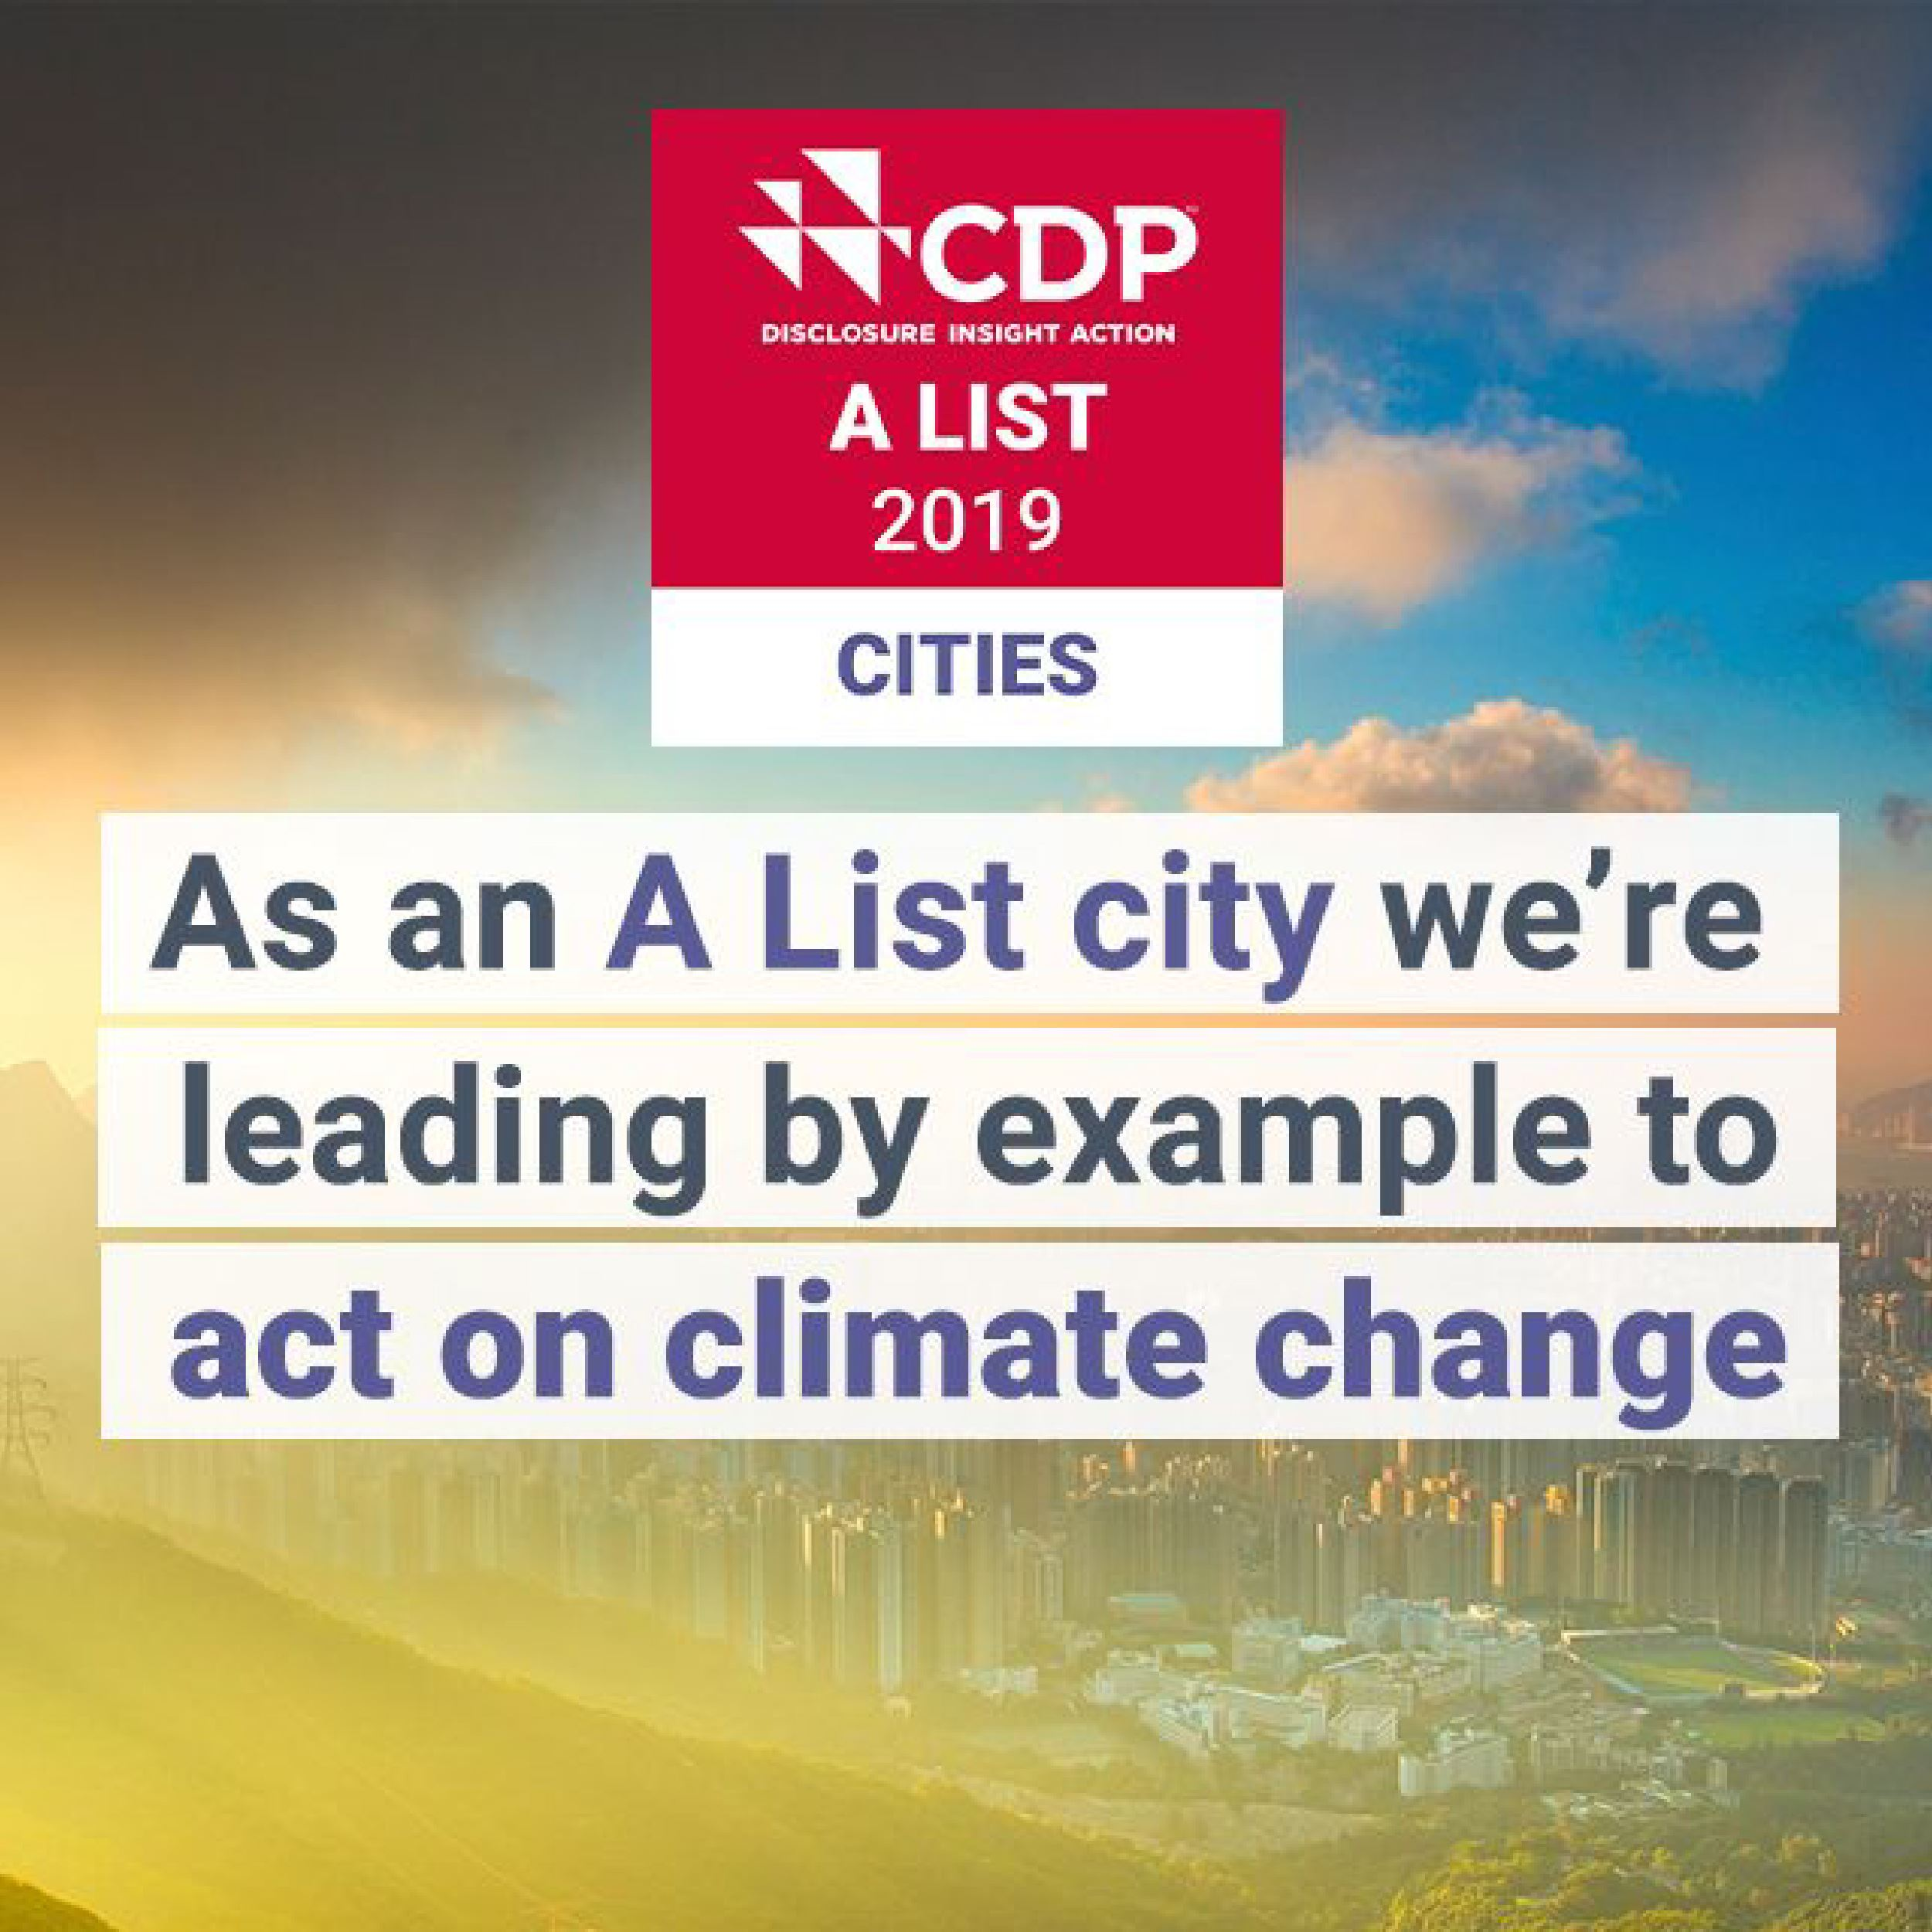 As a CDP A List city we're leading by example to act on climate change